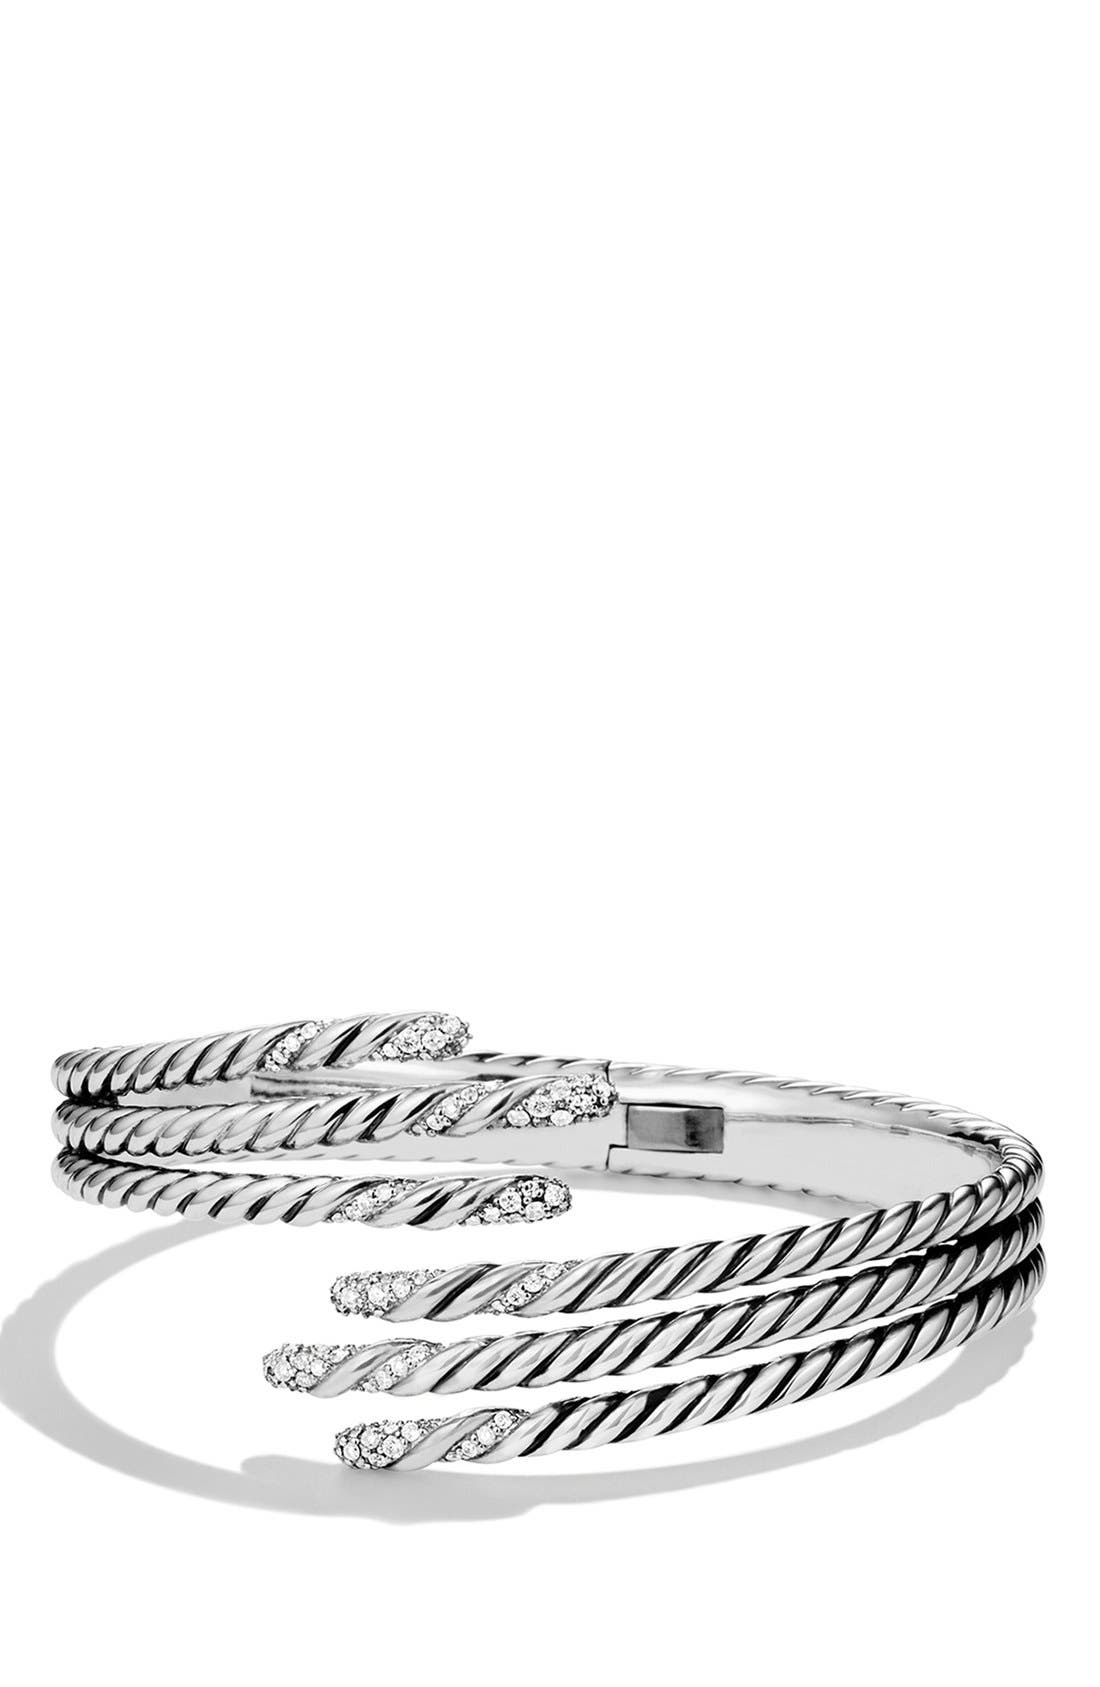 'Willow' Open Three-Row Bracelet with Diamonds,                             Main thumbnail 1, color,                             040